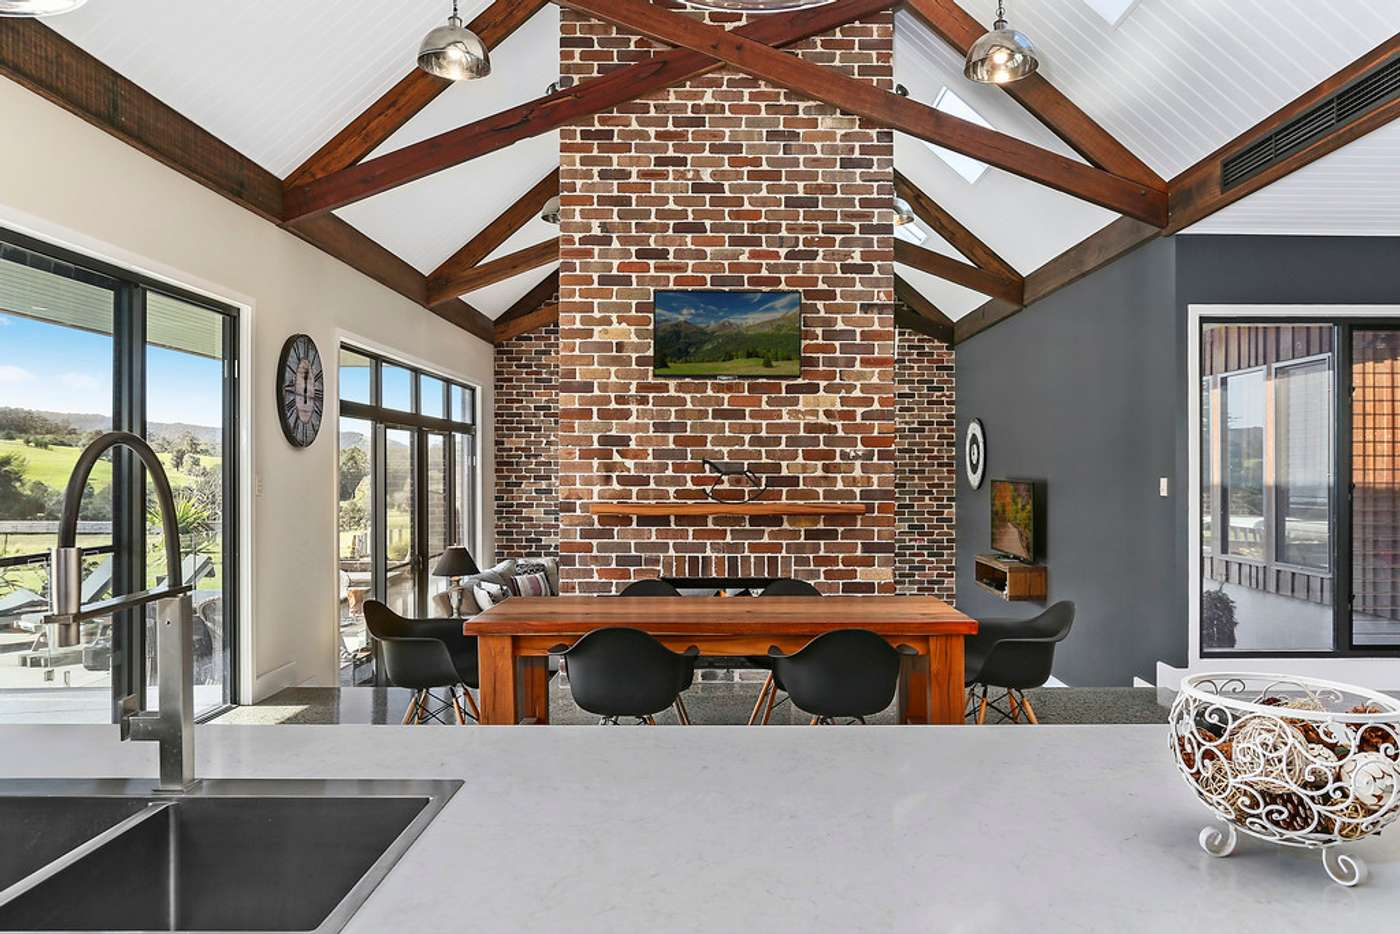 Fifth view of Homely house listing, 40 Bundewallah Rd, Berry NSW 2535